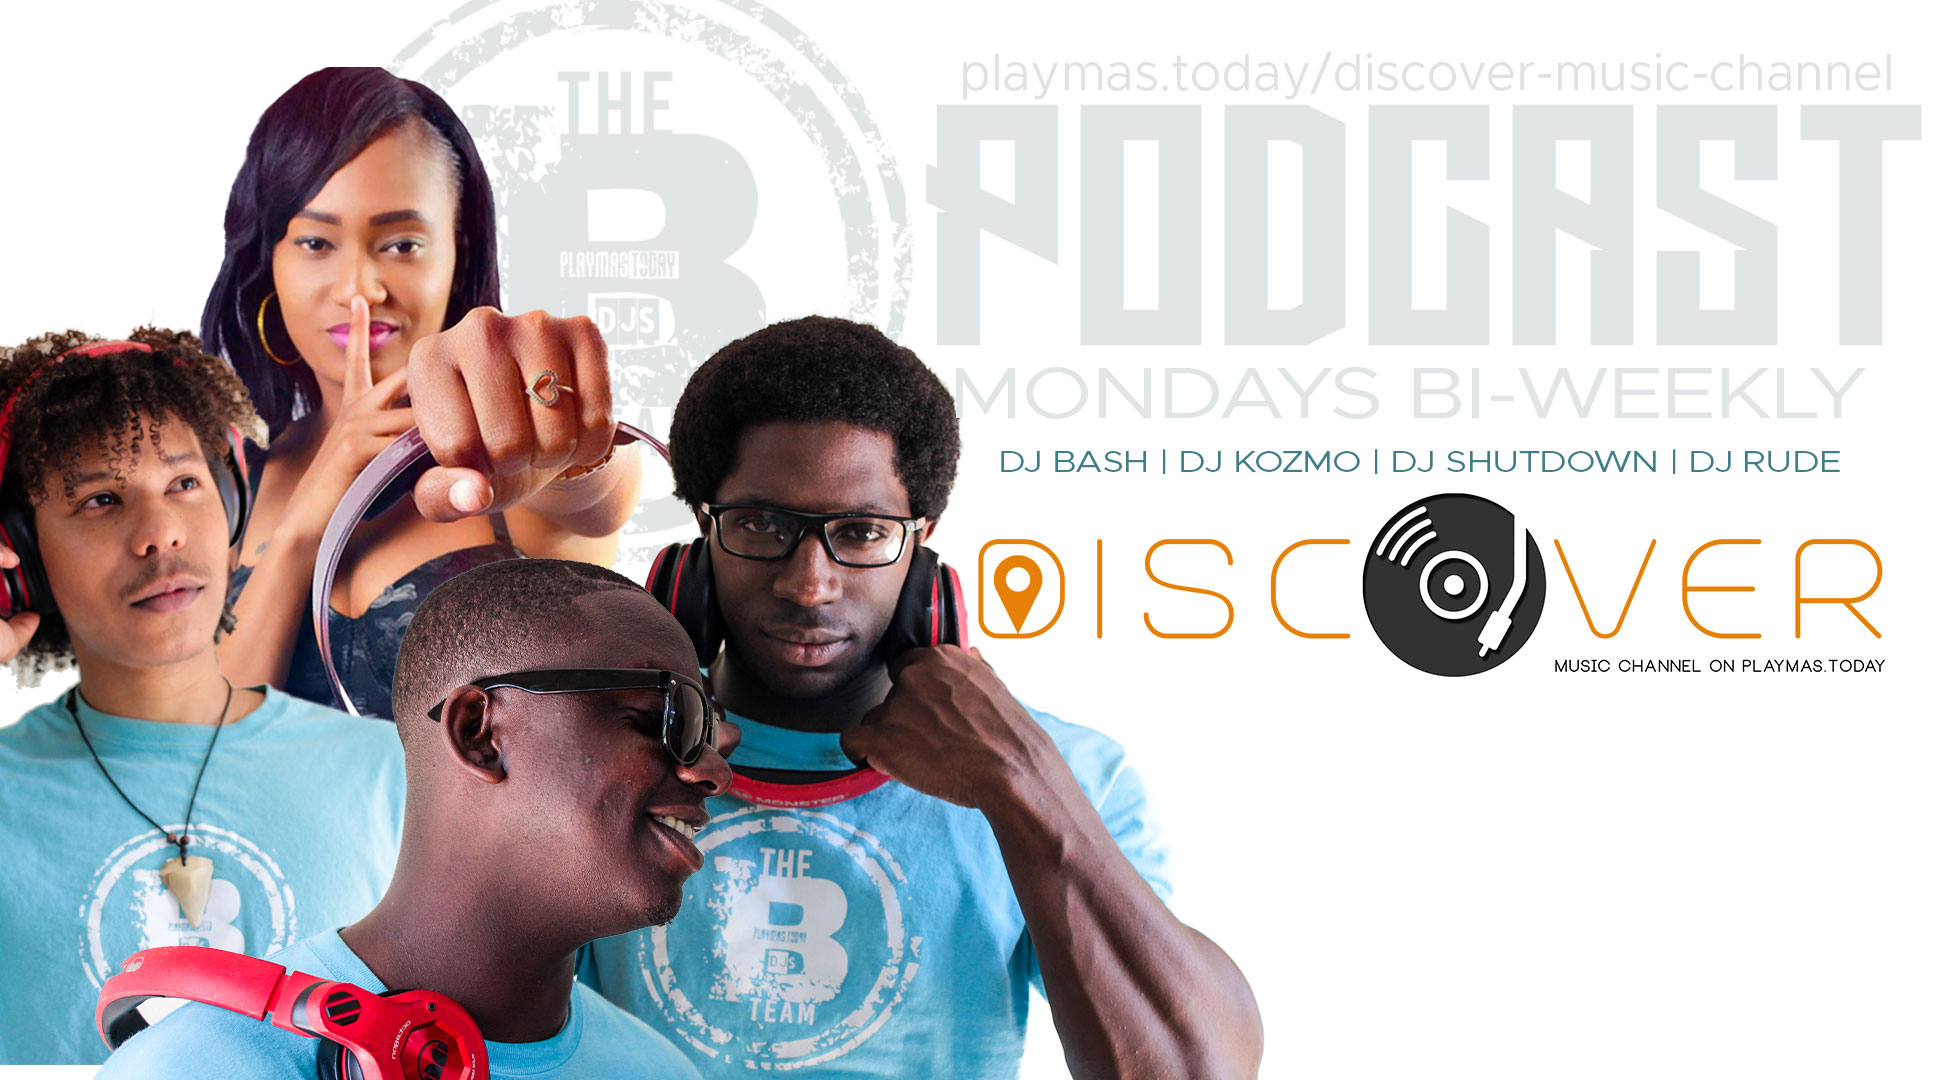 B Team Podcast on Discover Music Channel by PlayMas.Today (Bahamas) Caribbean Centric content